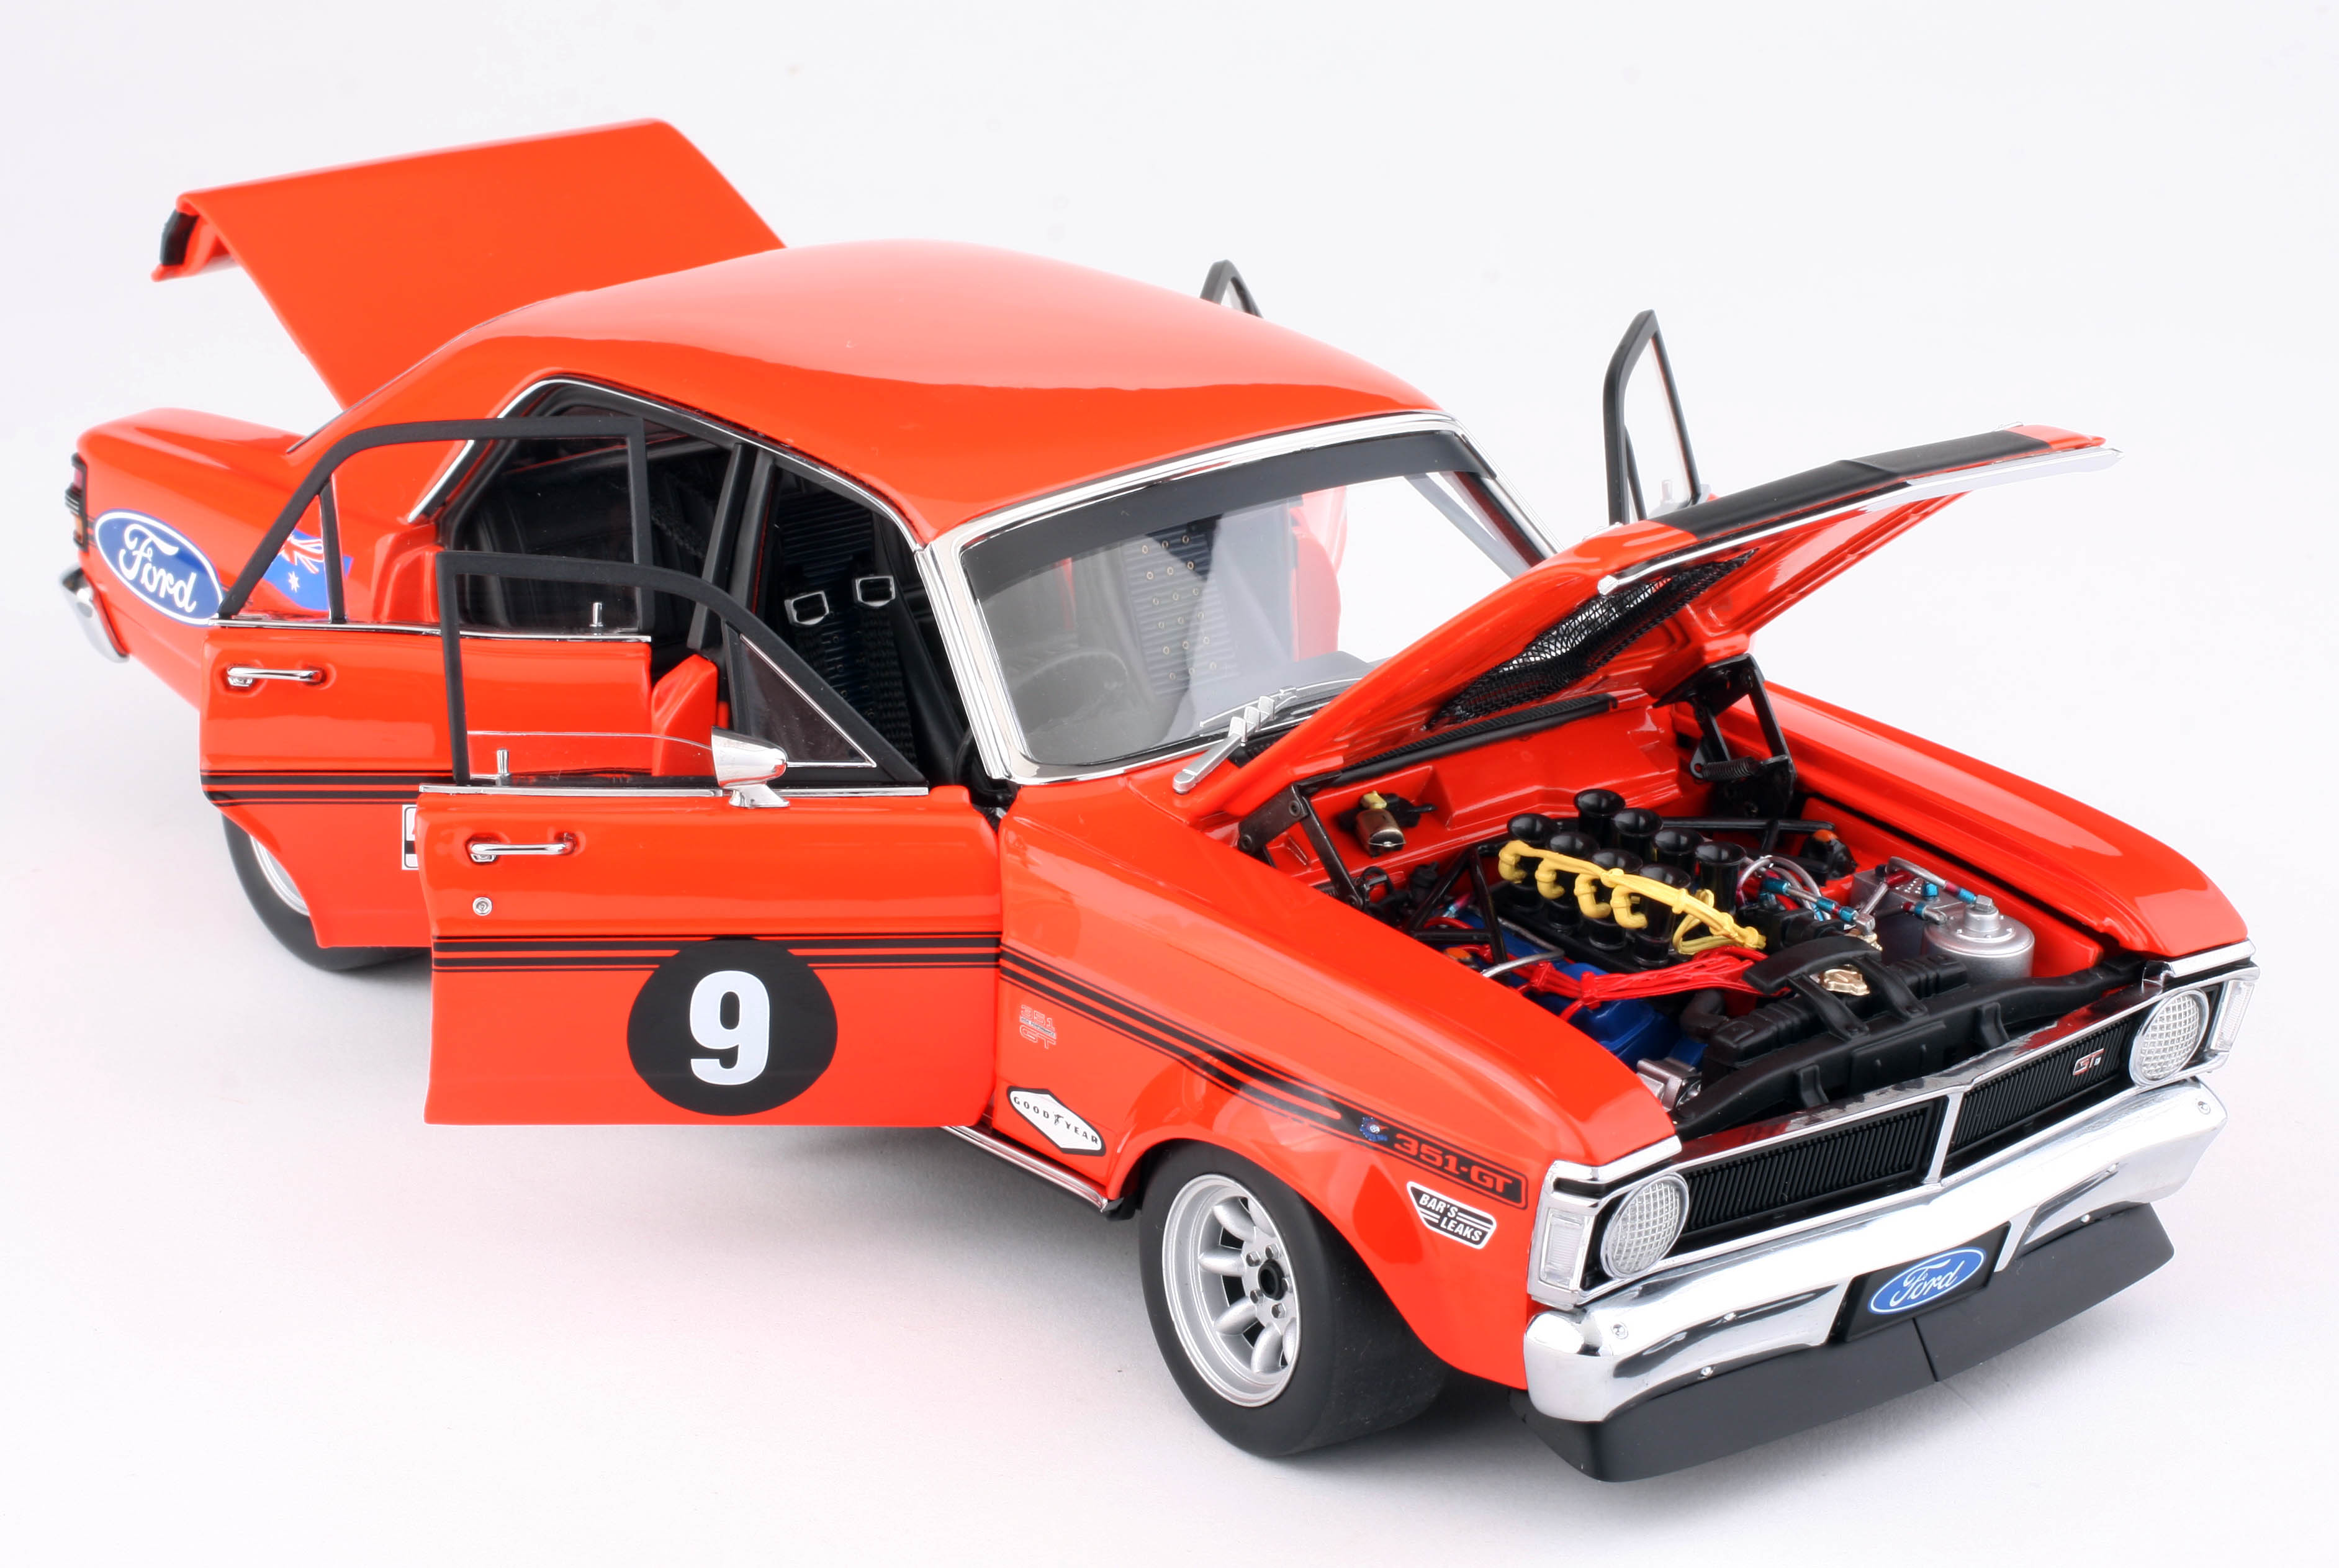 1:18 Diecast Model Expo 2015 Calder Park Allan Moffat 1971 Ford Super Falcon SuperFalcon Diecast Model Car